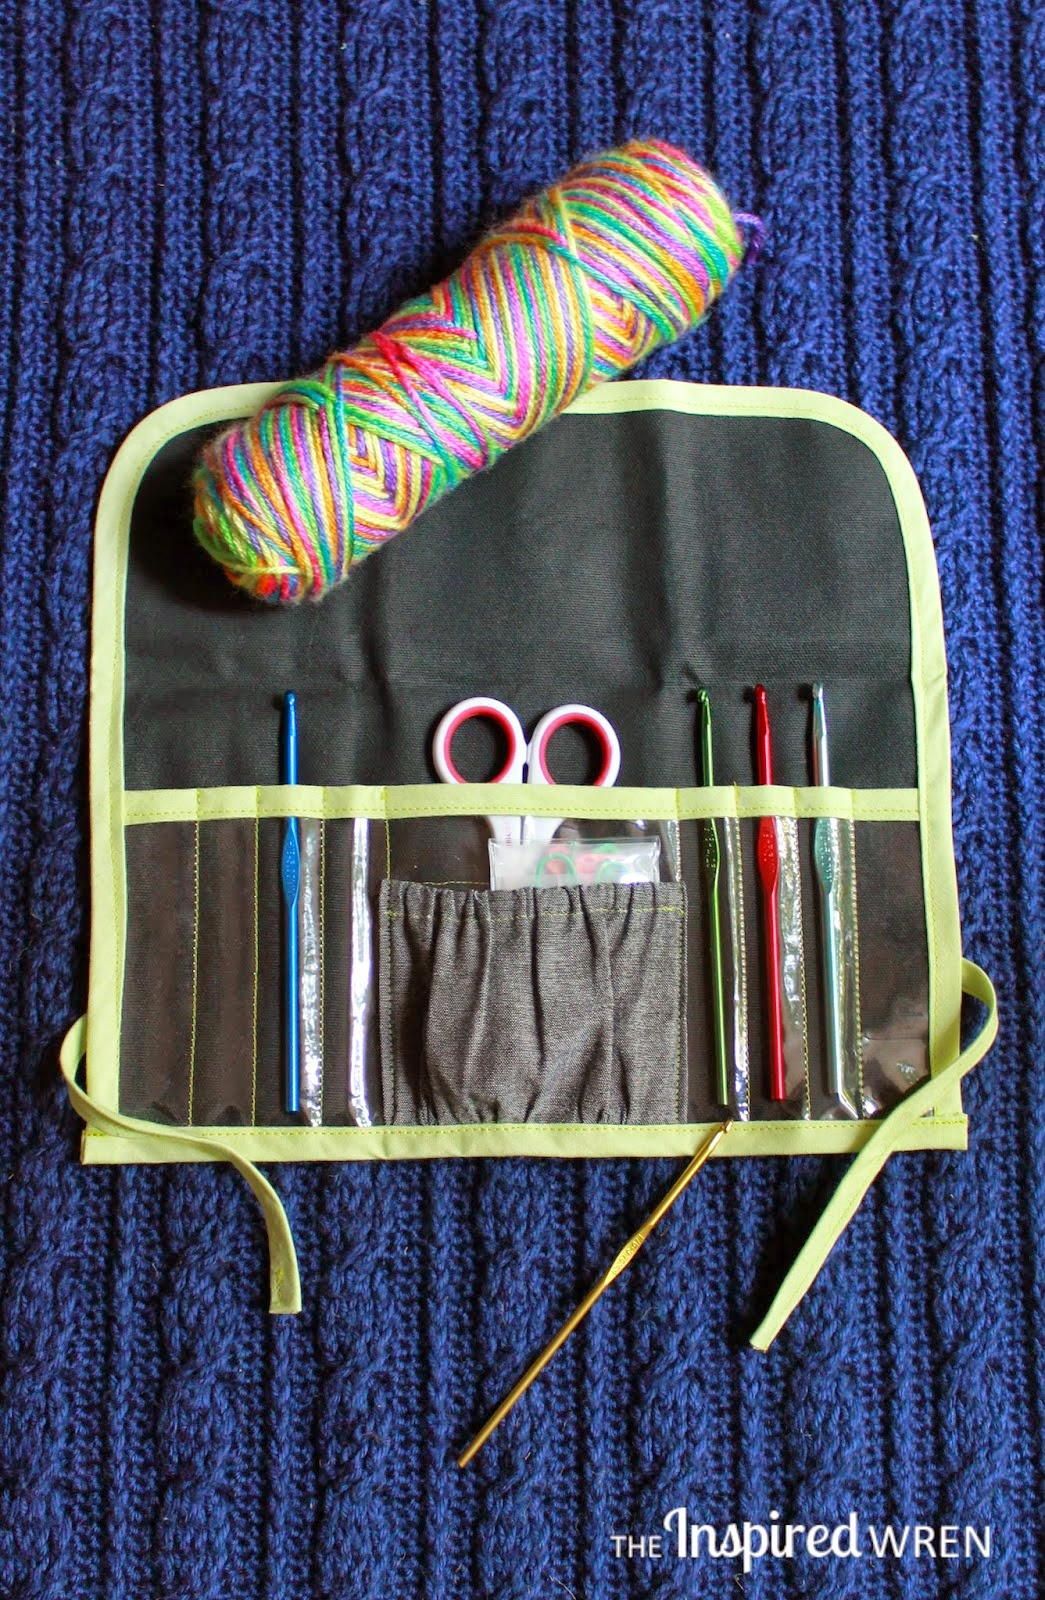 http://theinspiredwren.blogspot.com/2014/08/tutorial-clear-view-crochet-hook-case.html